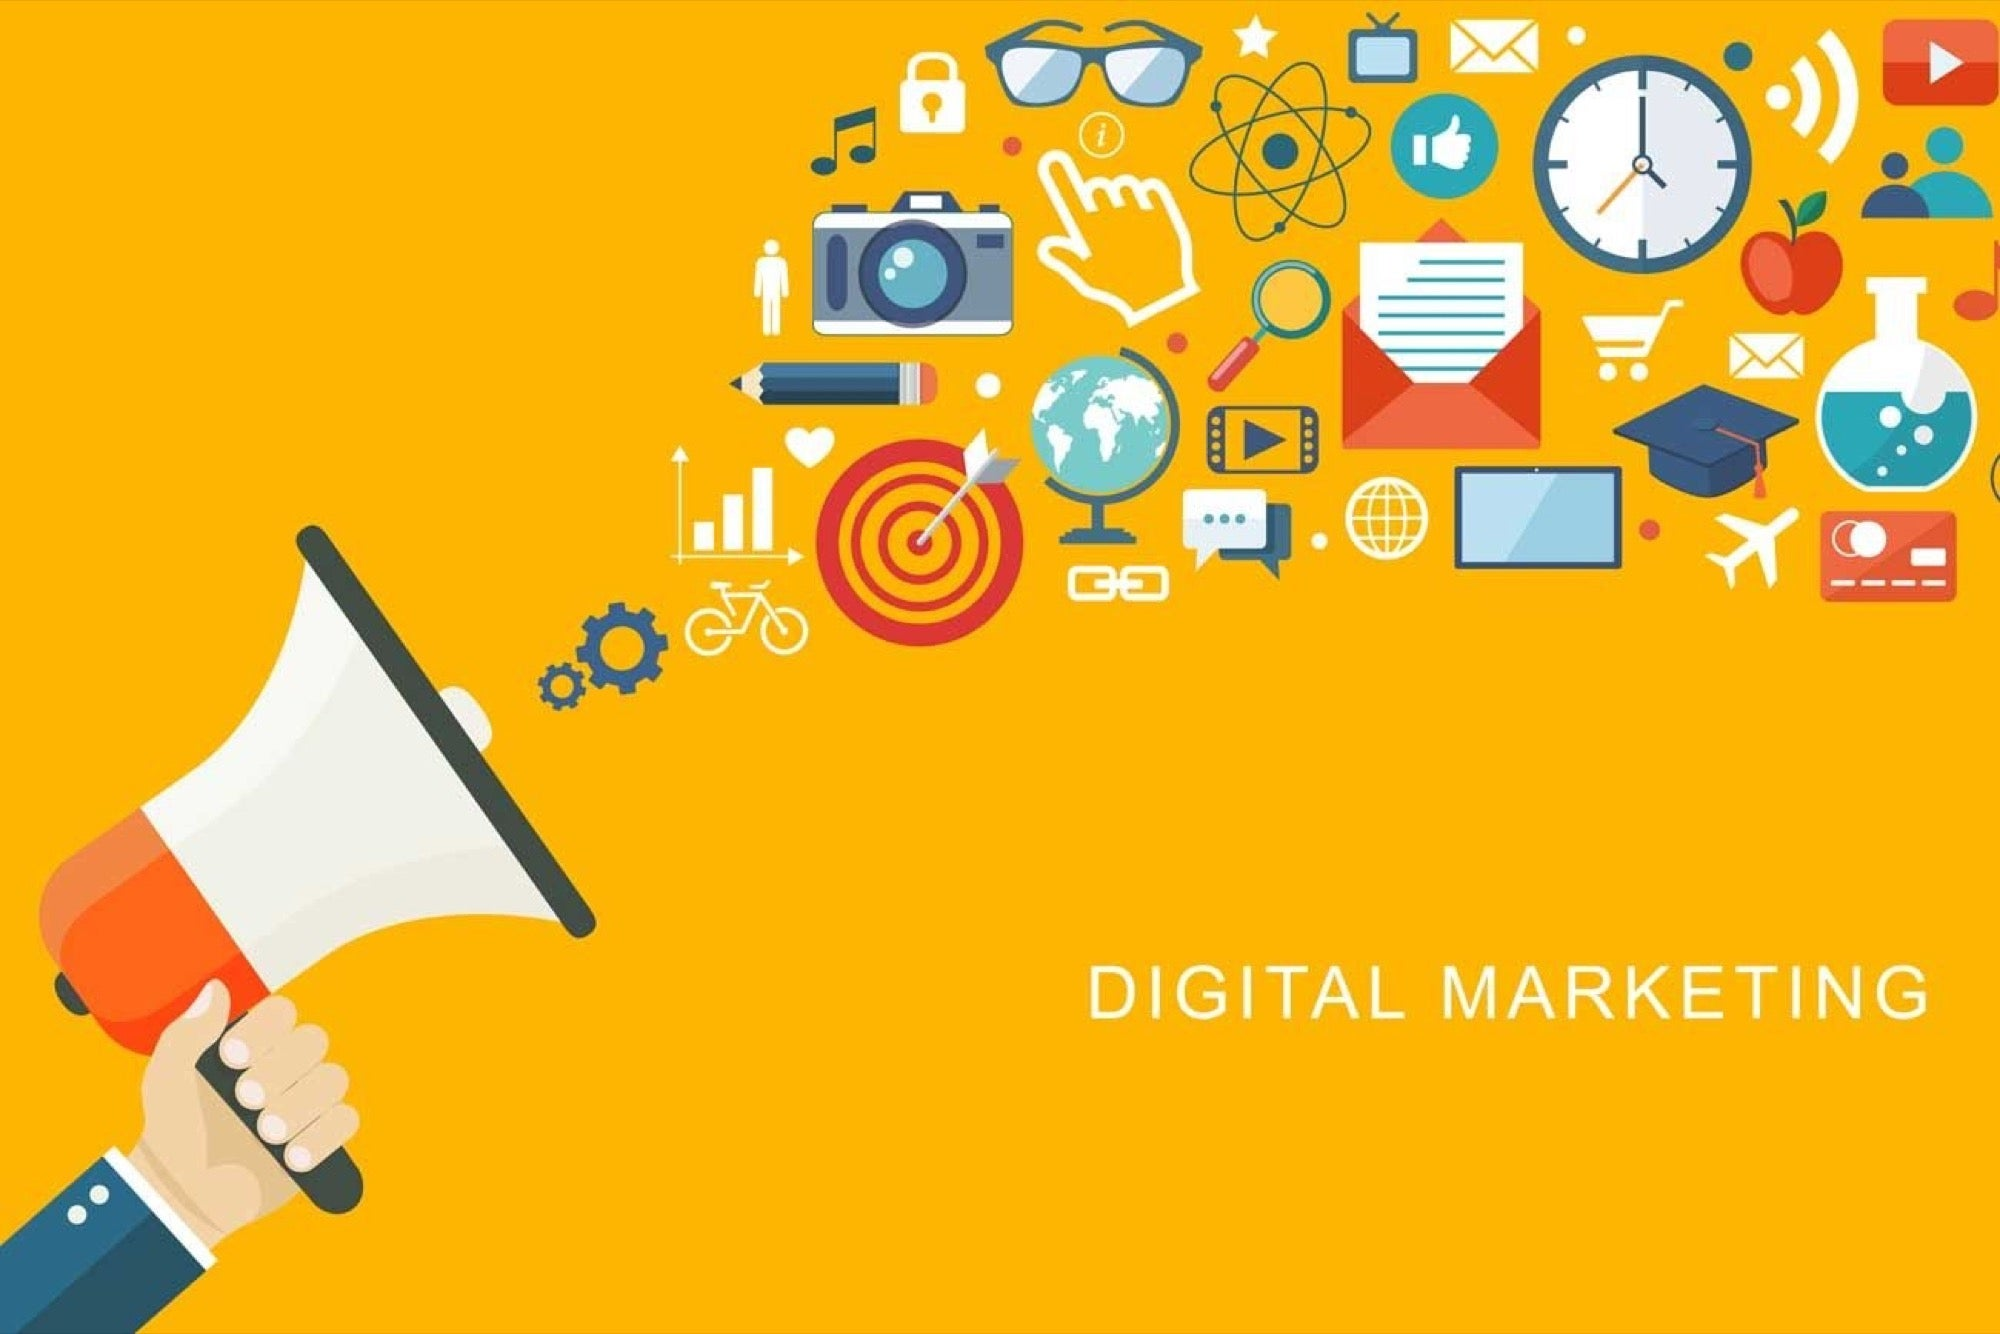 Digital Marketing Tips To Make A Small Business Startup A Big Venture